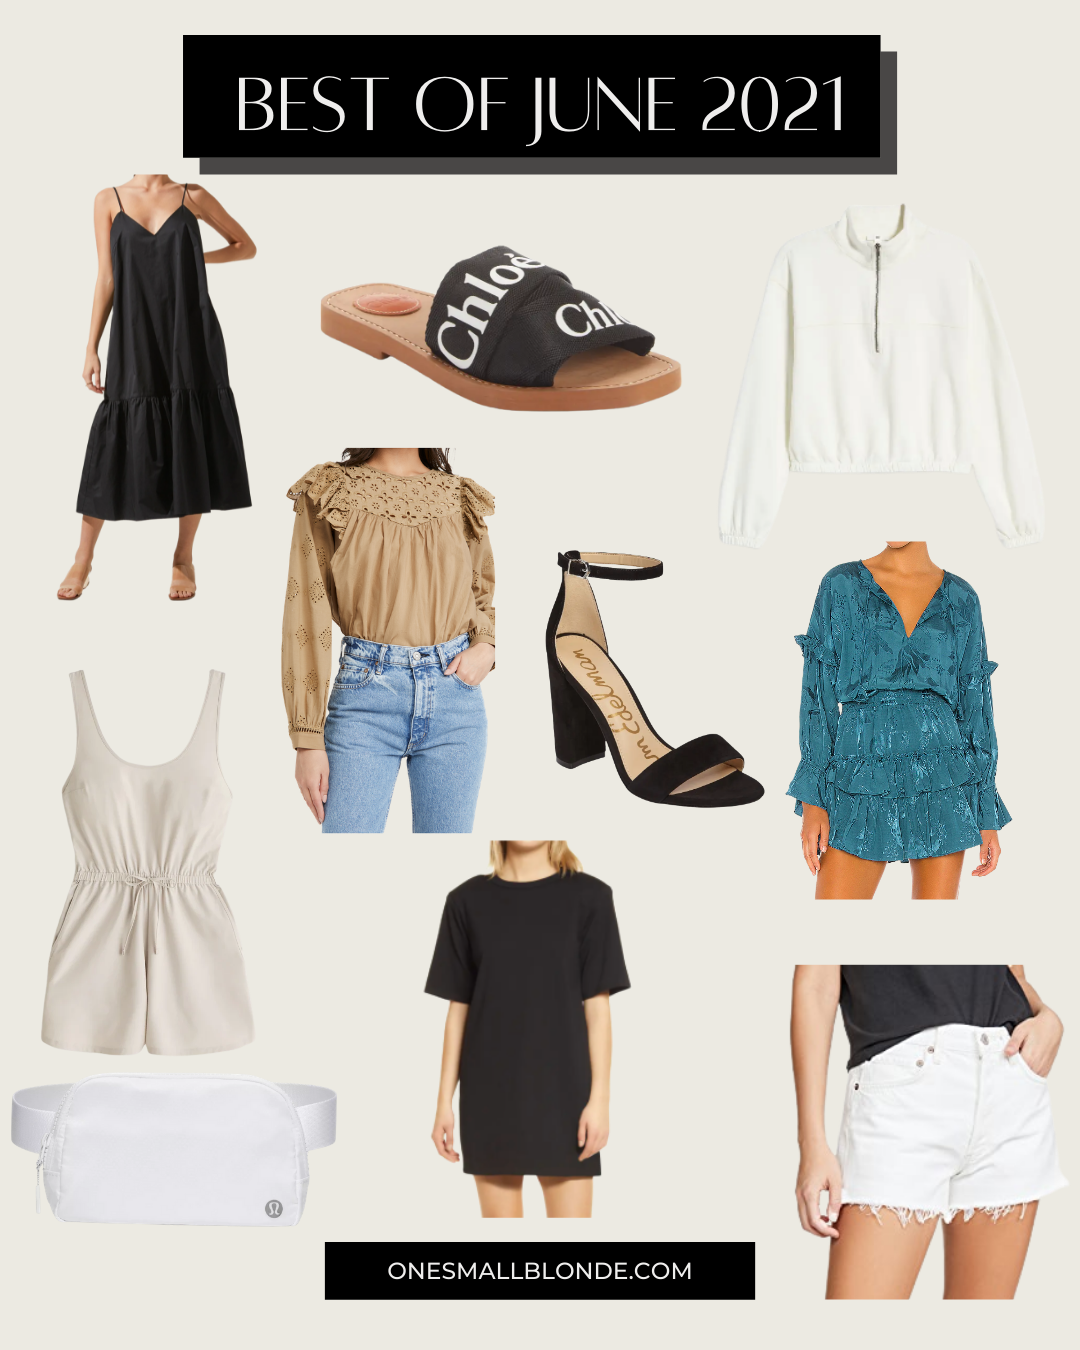 a collage of women's clothes and shoes